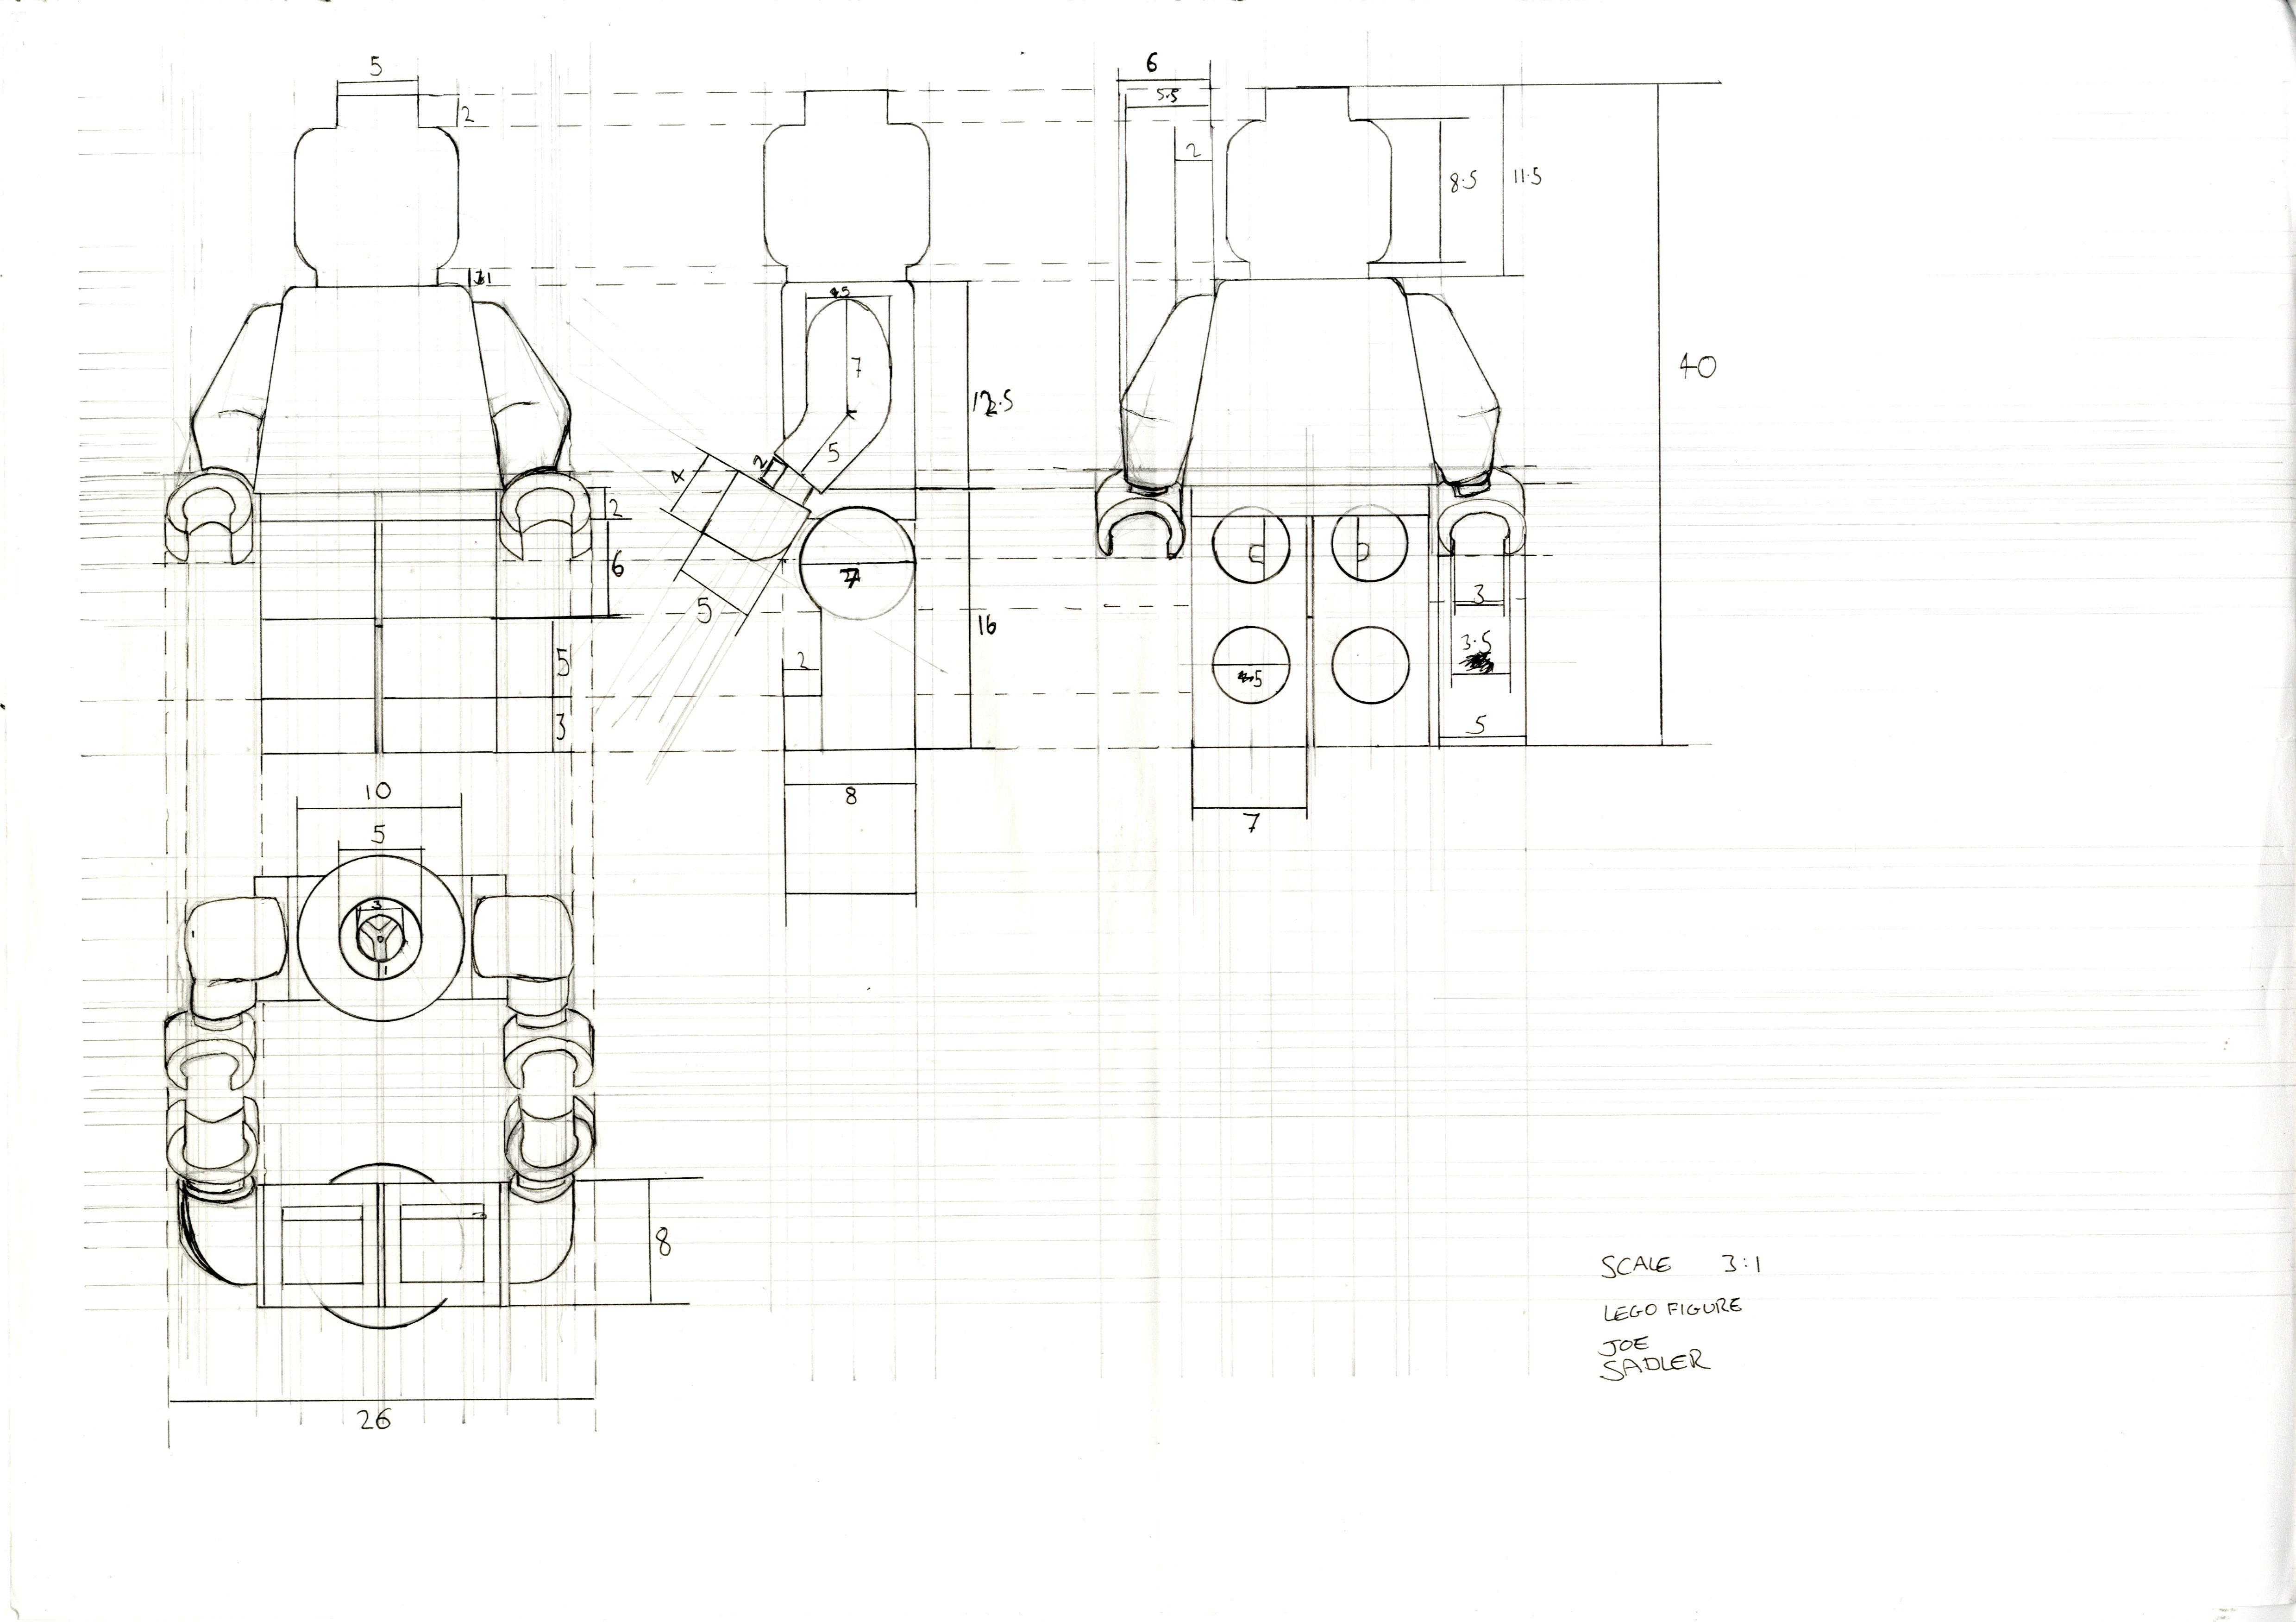 Cad And Technical Drawing By Joseph Sadler At